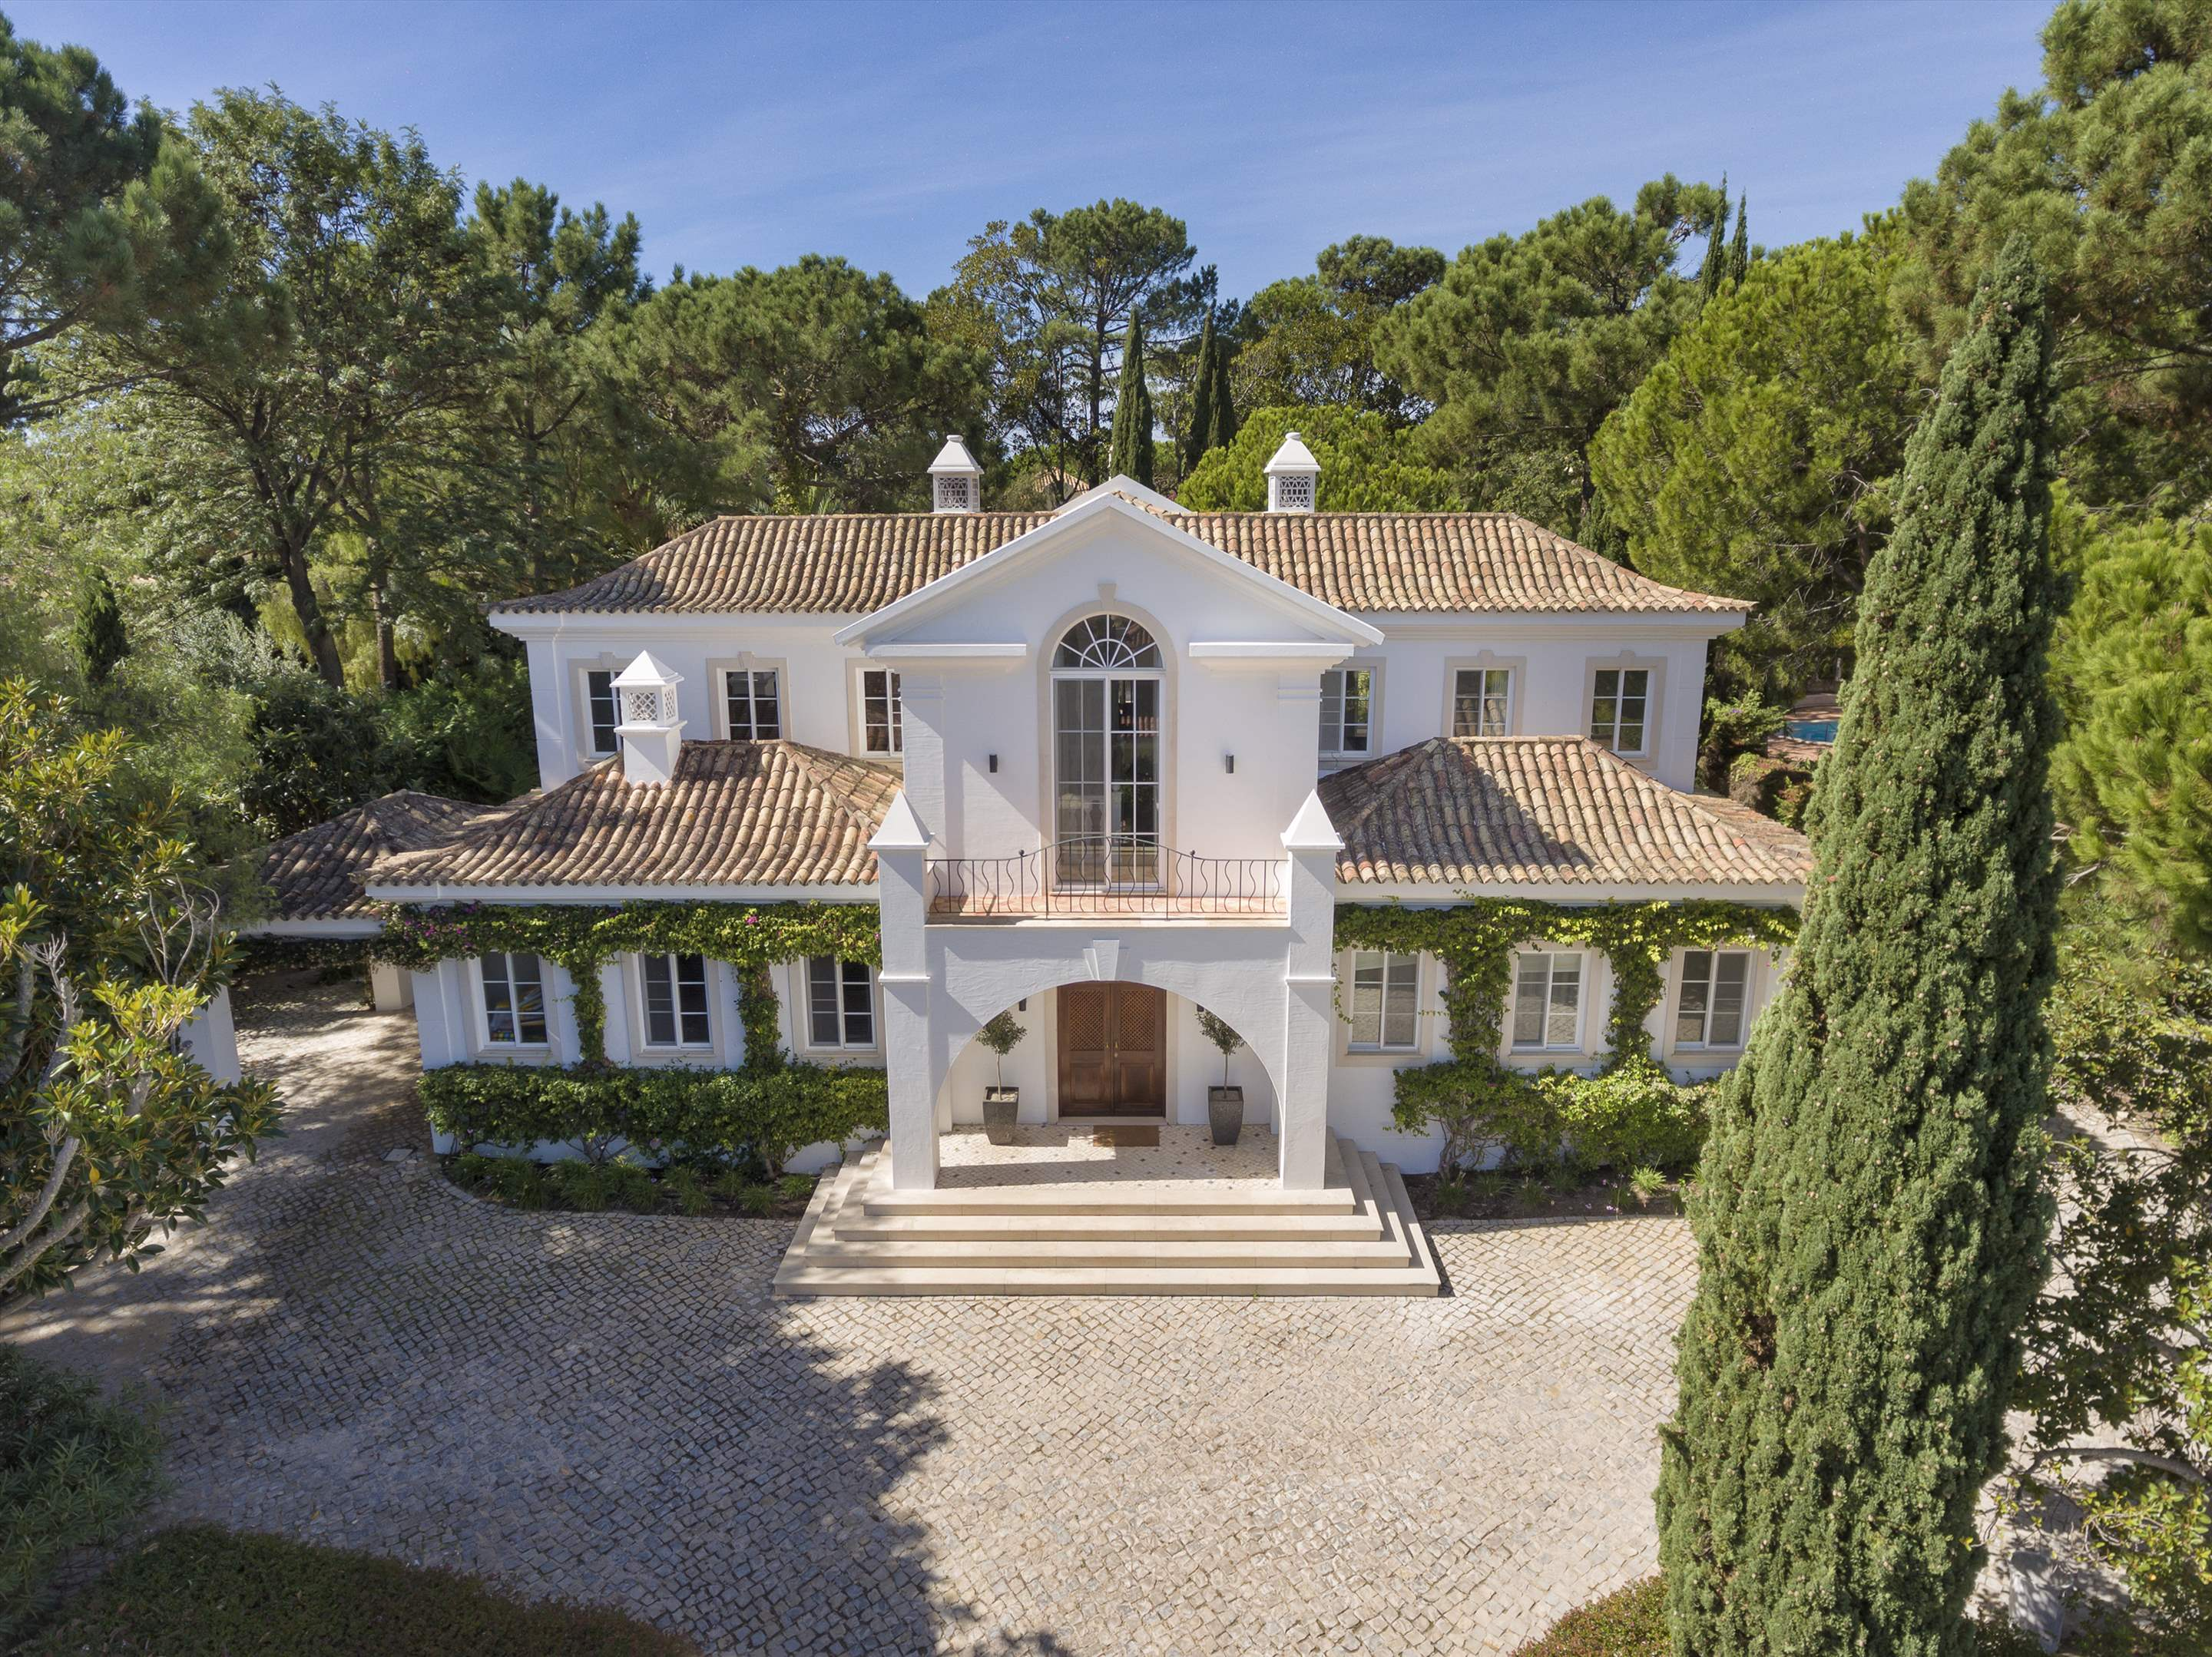 Villa Lavinia, Four Bedrooms, 4 bedroom villa in Quinta do Lago, Algarve Photo #22